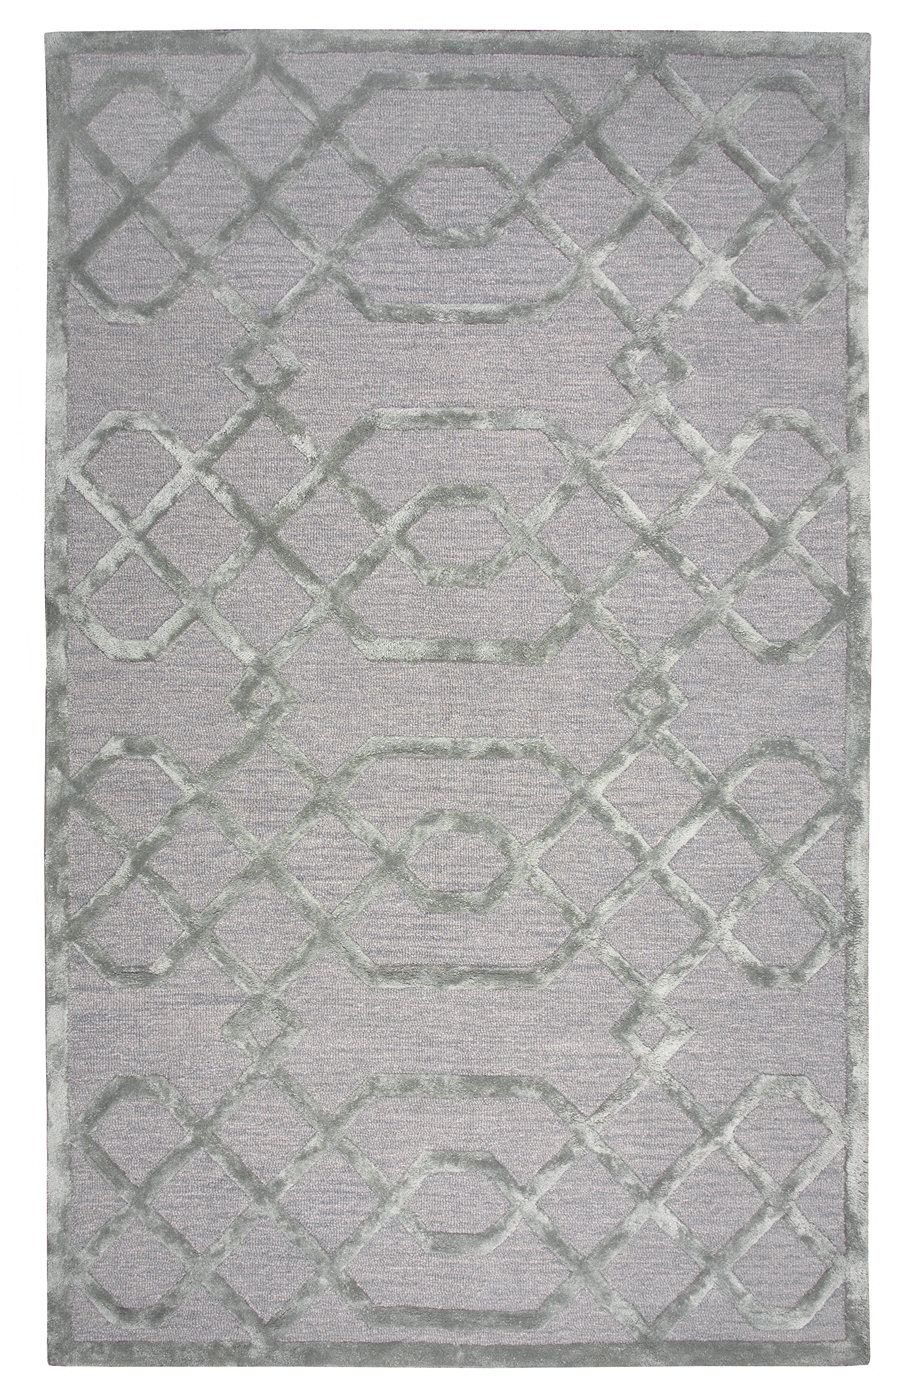 Monroe Basic Trellis Wool Area Rug In Gray Amp Silver 9 X 12